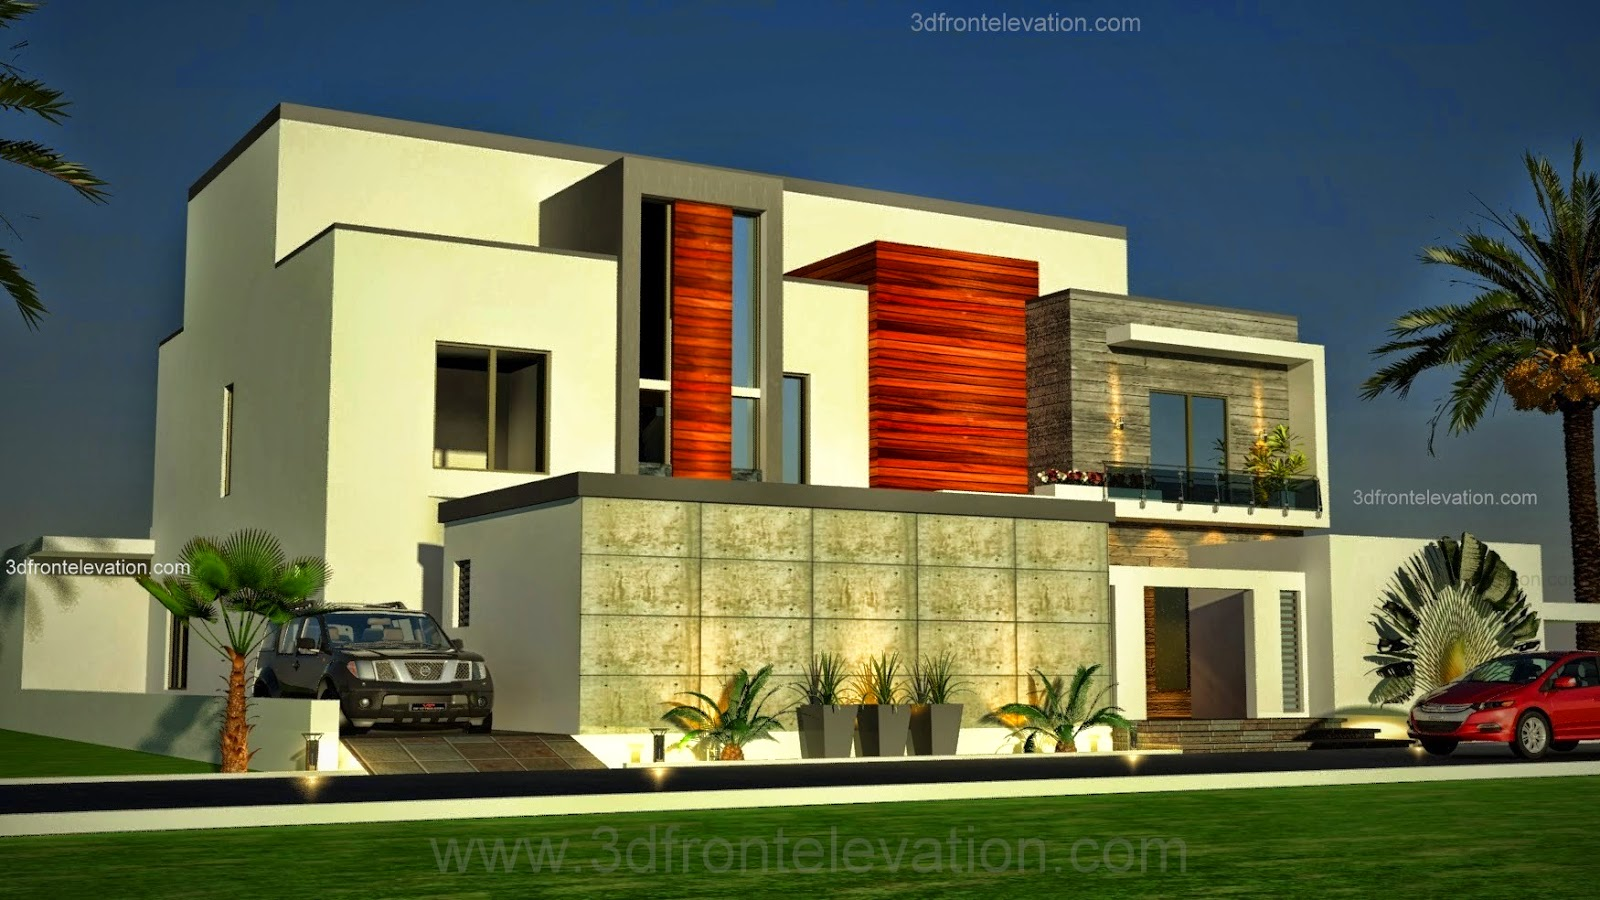 Front Elevation House Dubai : Dubai modern houses